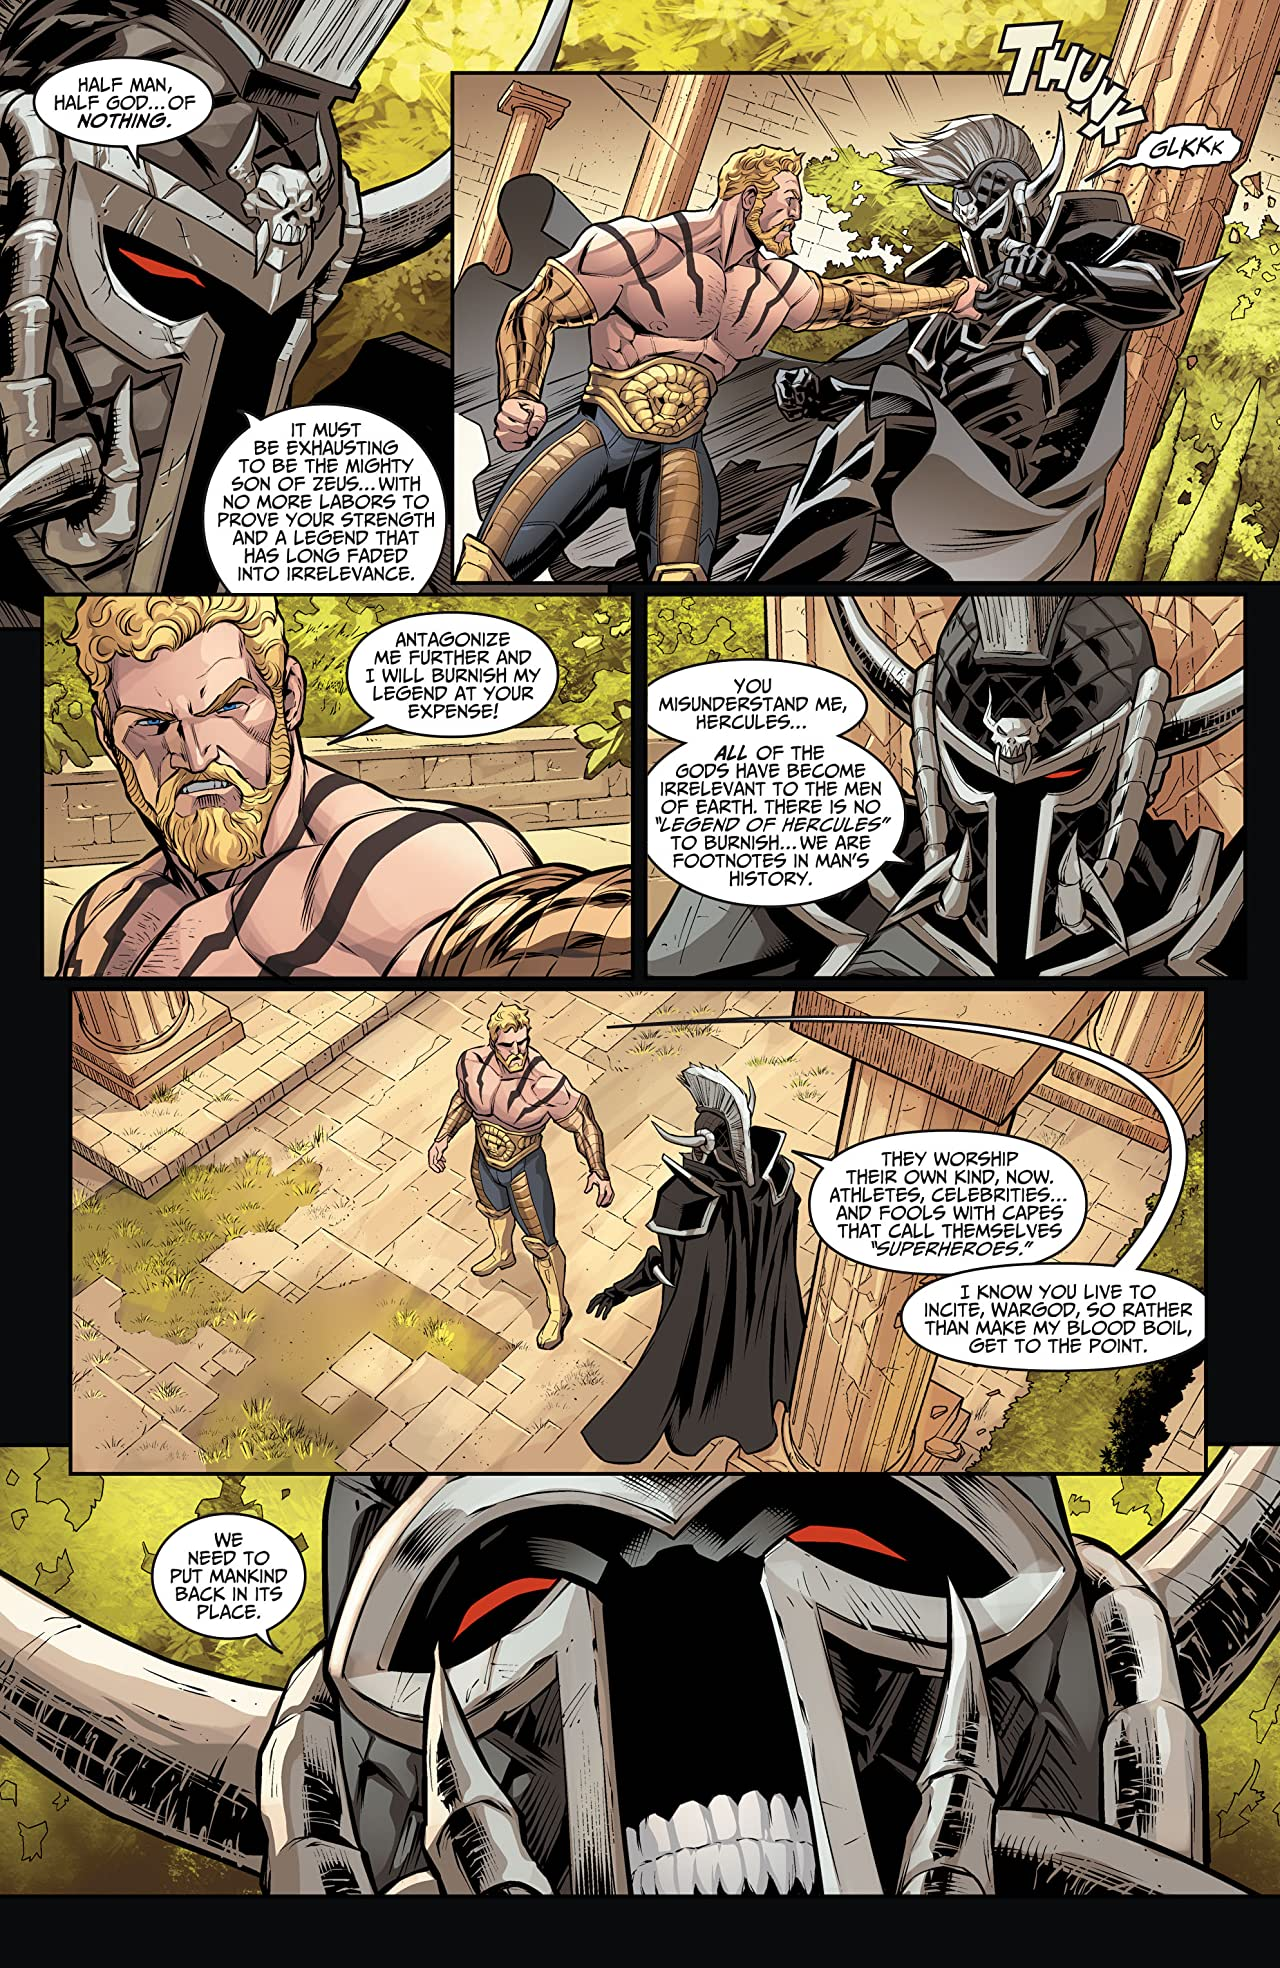 Injustice: Gods Among Us: Year Four (2015) Vol. 1